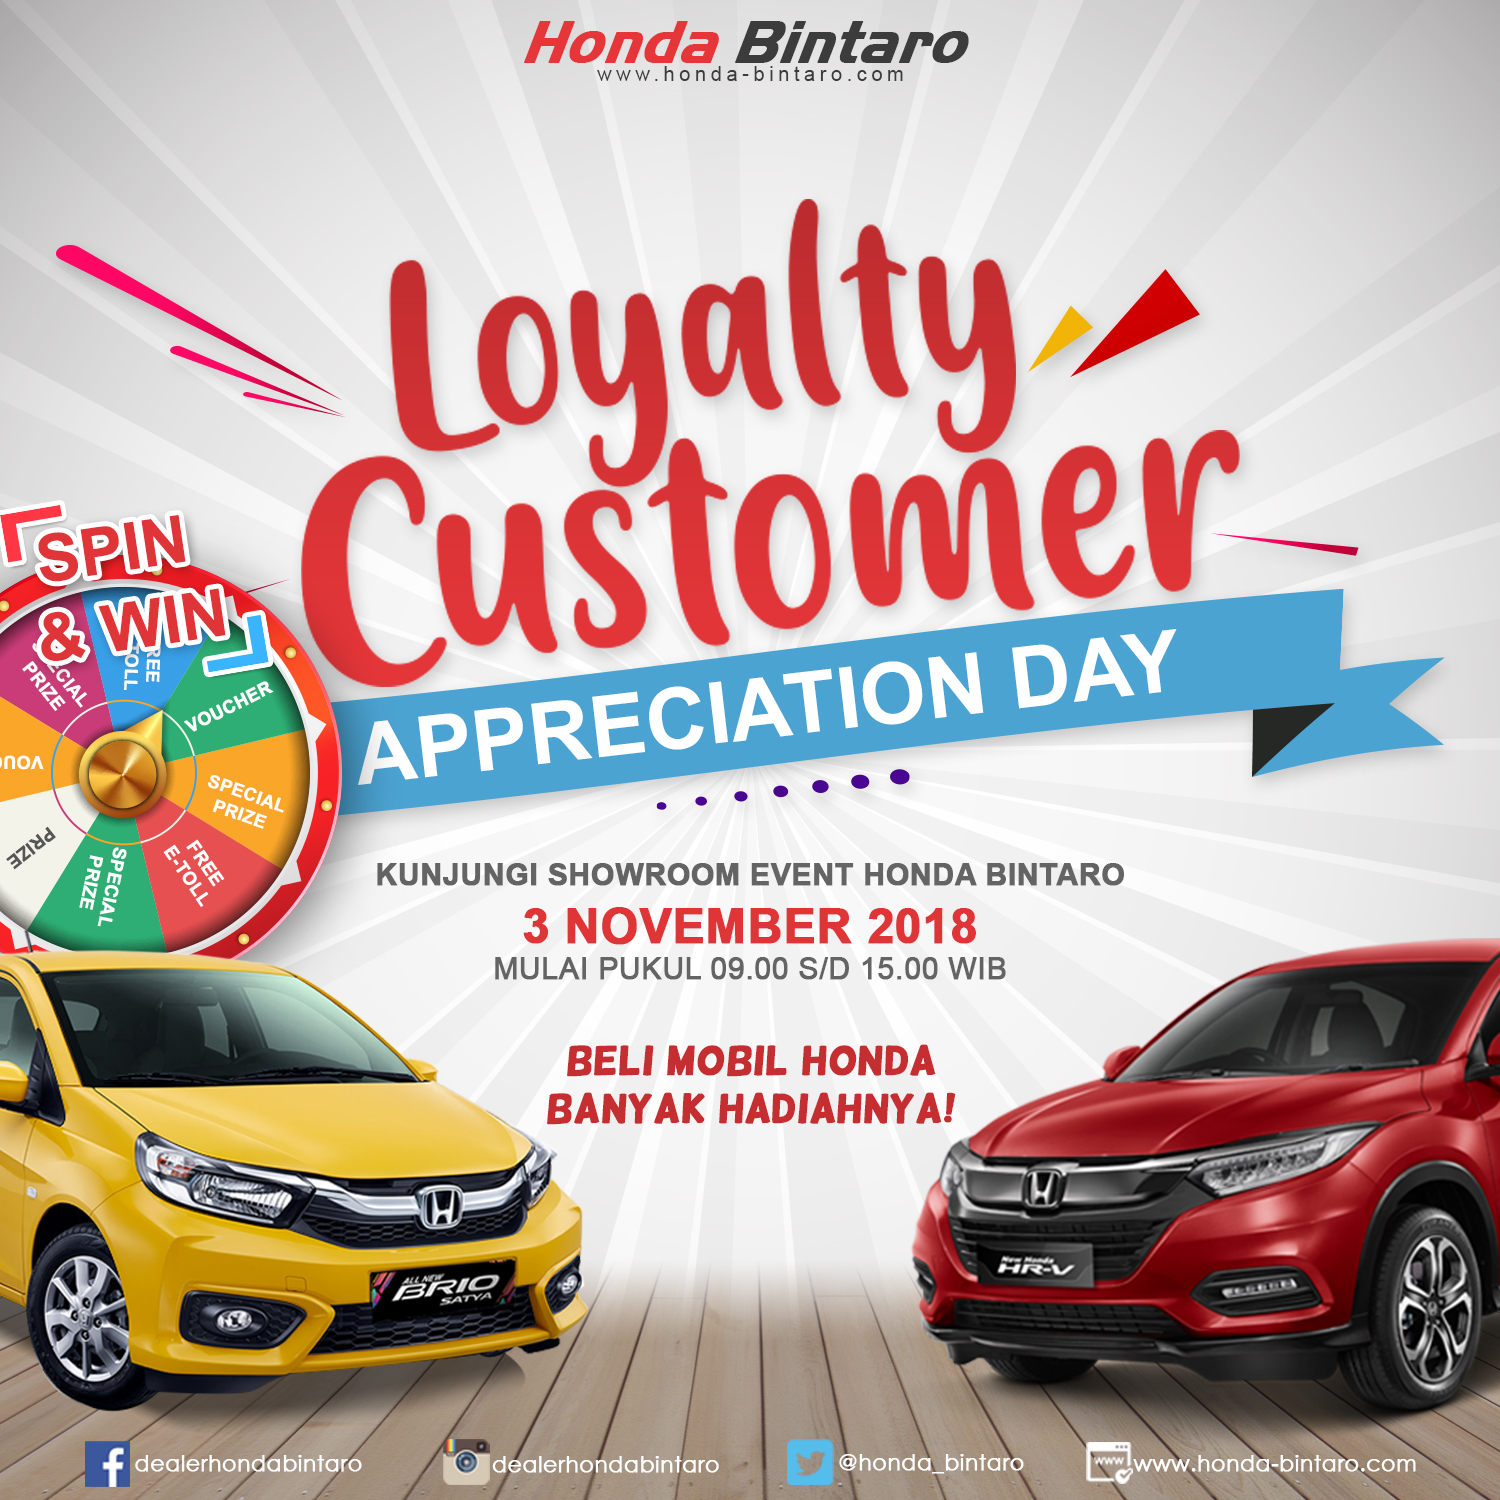 Showroom Event Honda Bintaro 3 November 2018